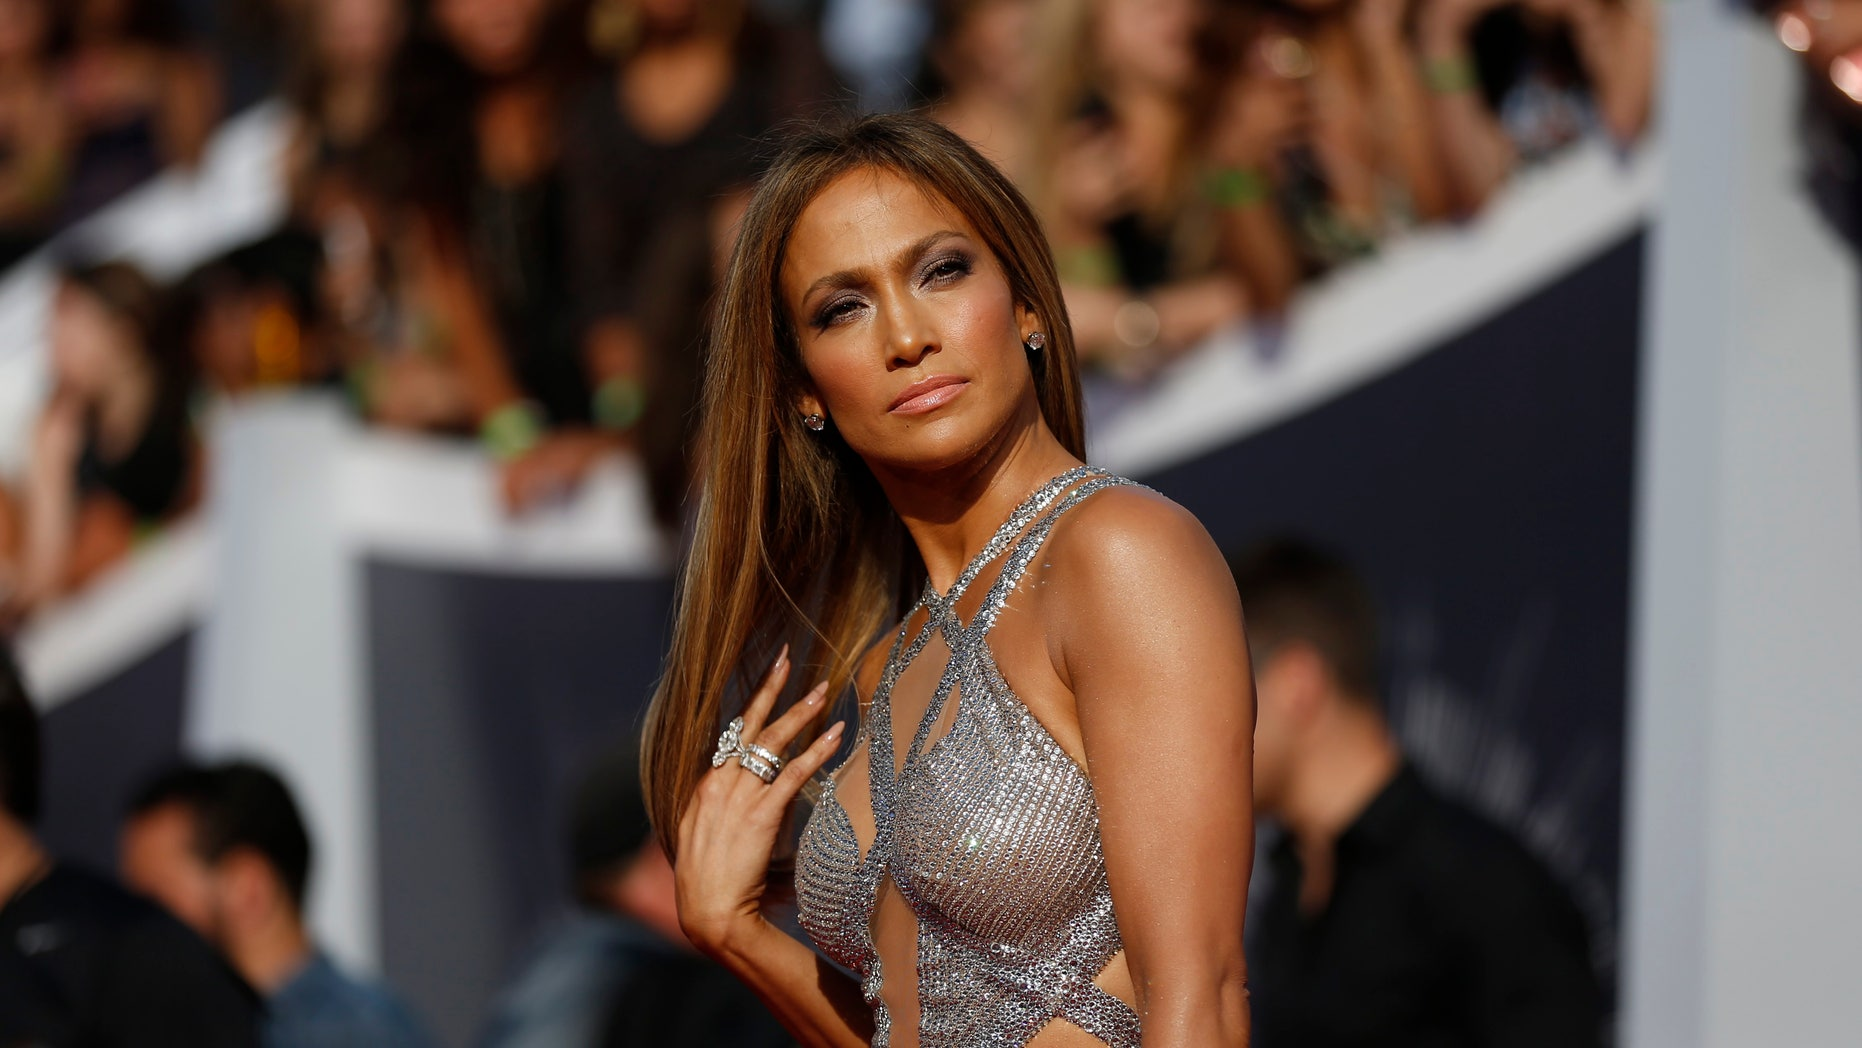 August 24, 2014. Jennifer Lopez arrives at the 2014 MTV Video Music Awards in Inglewood.